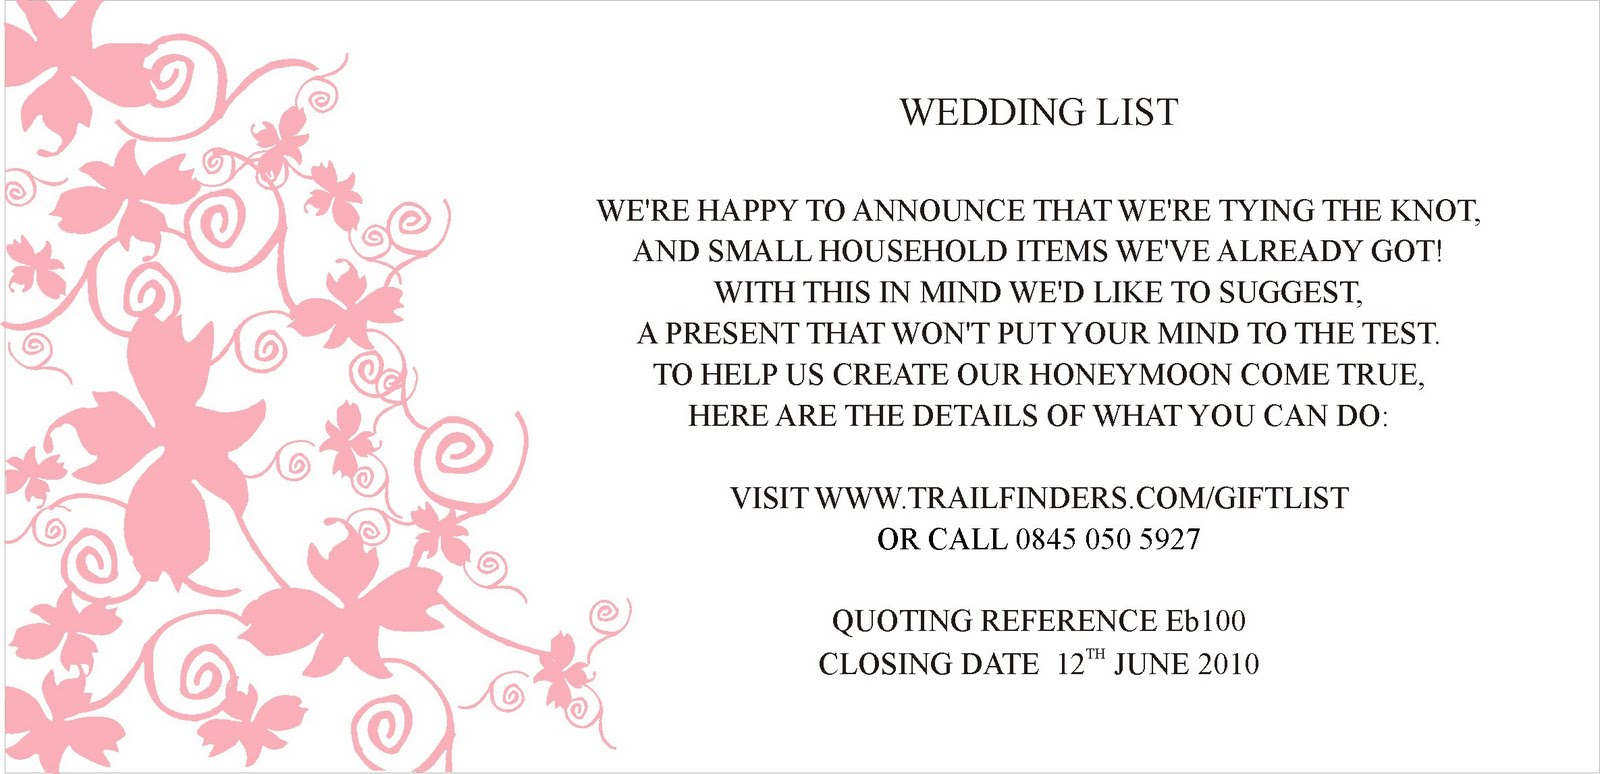 Wedding Gift List Cards : wedding gift card serves a practical purpose, saving you from ten ...